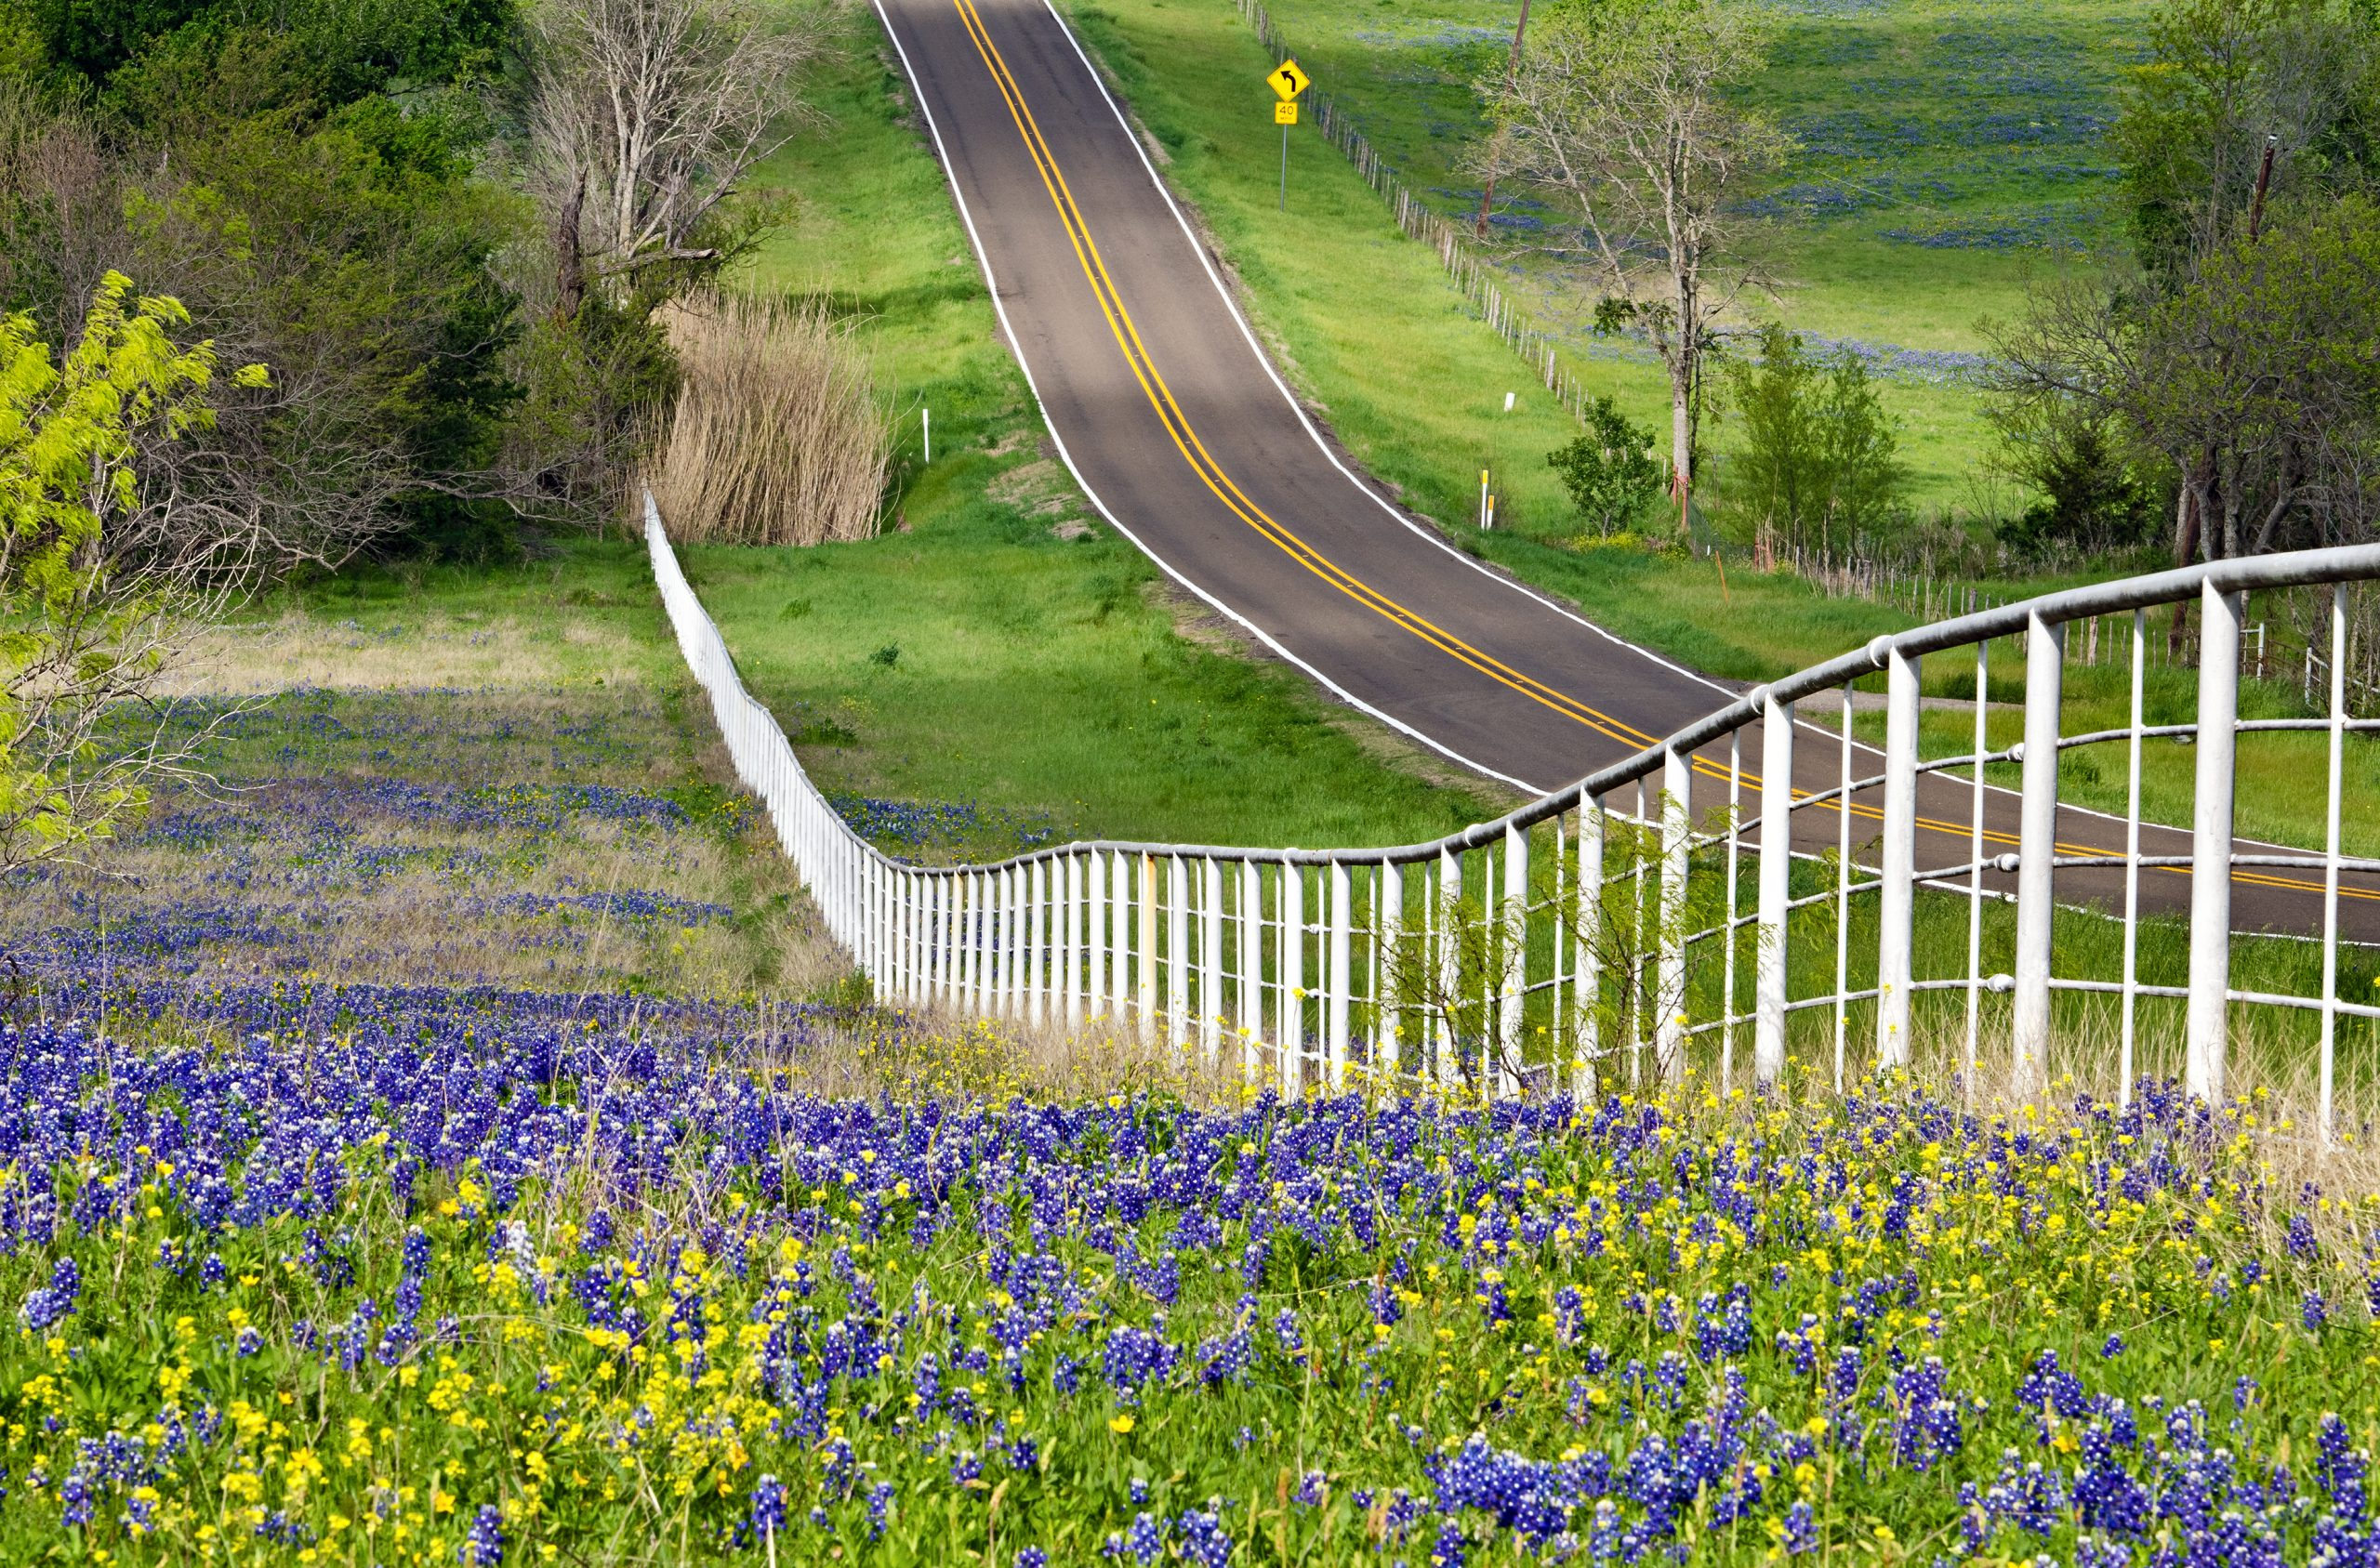 2 lane road in Texas lined with a white fence next to a field of bluebonnets--taking a Texas road trip in spring means seeking out views like this